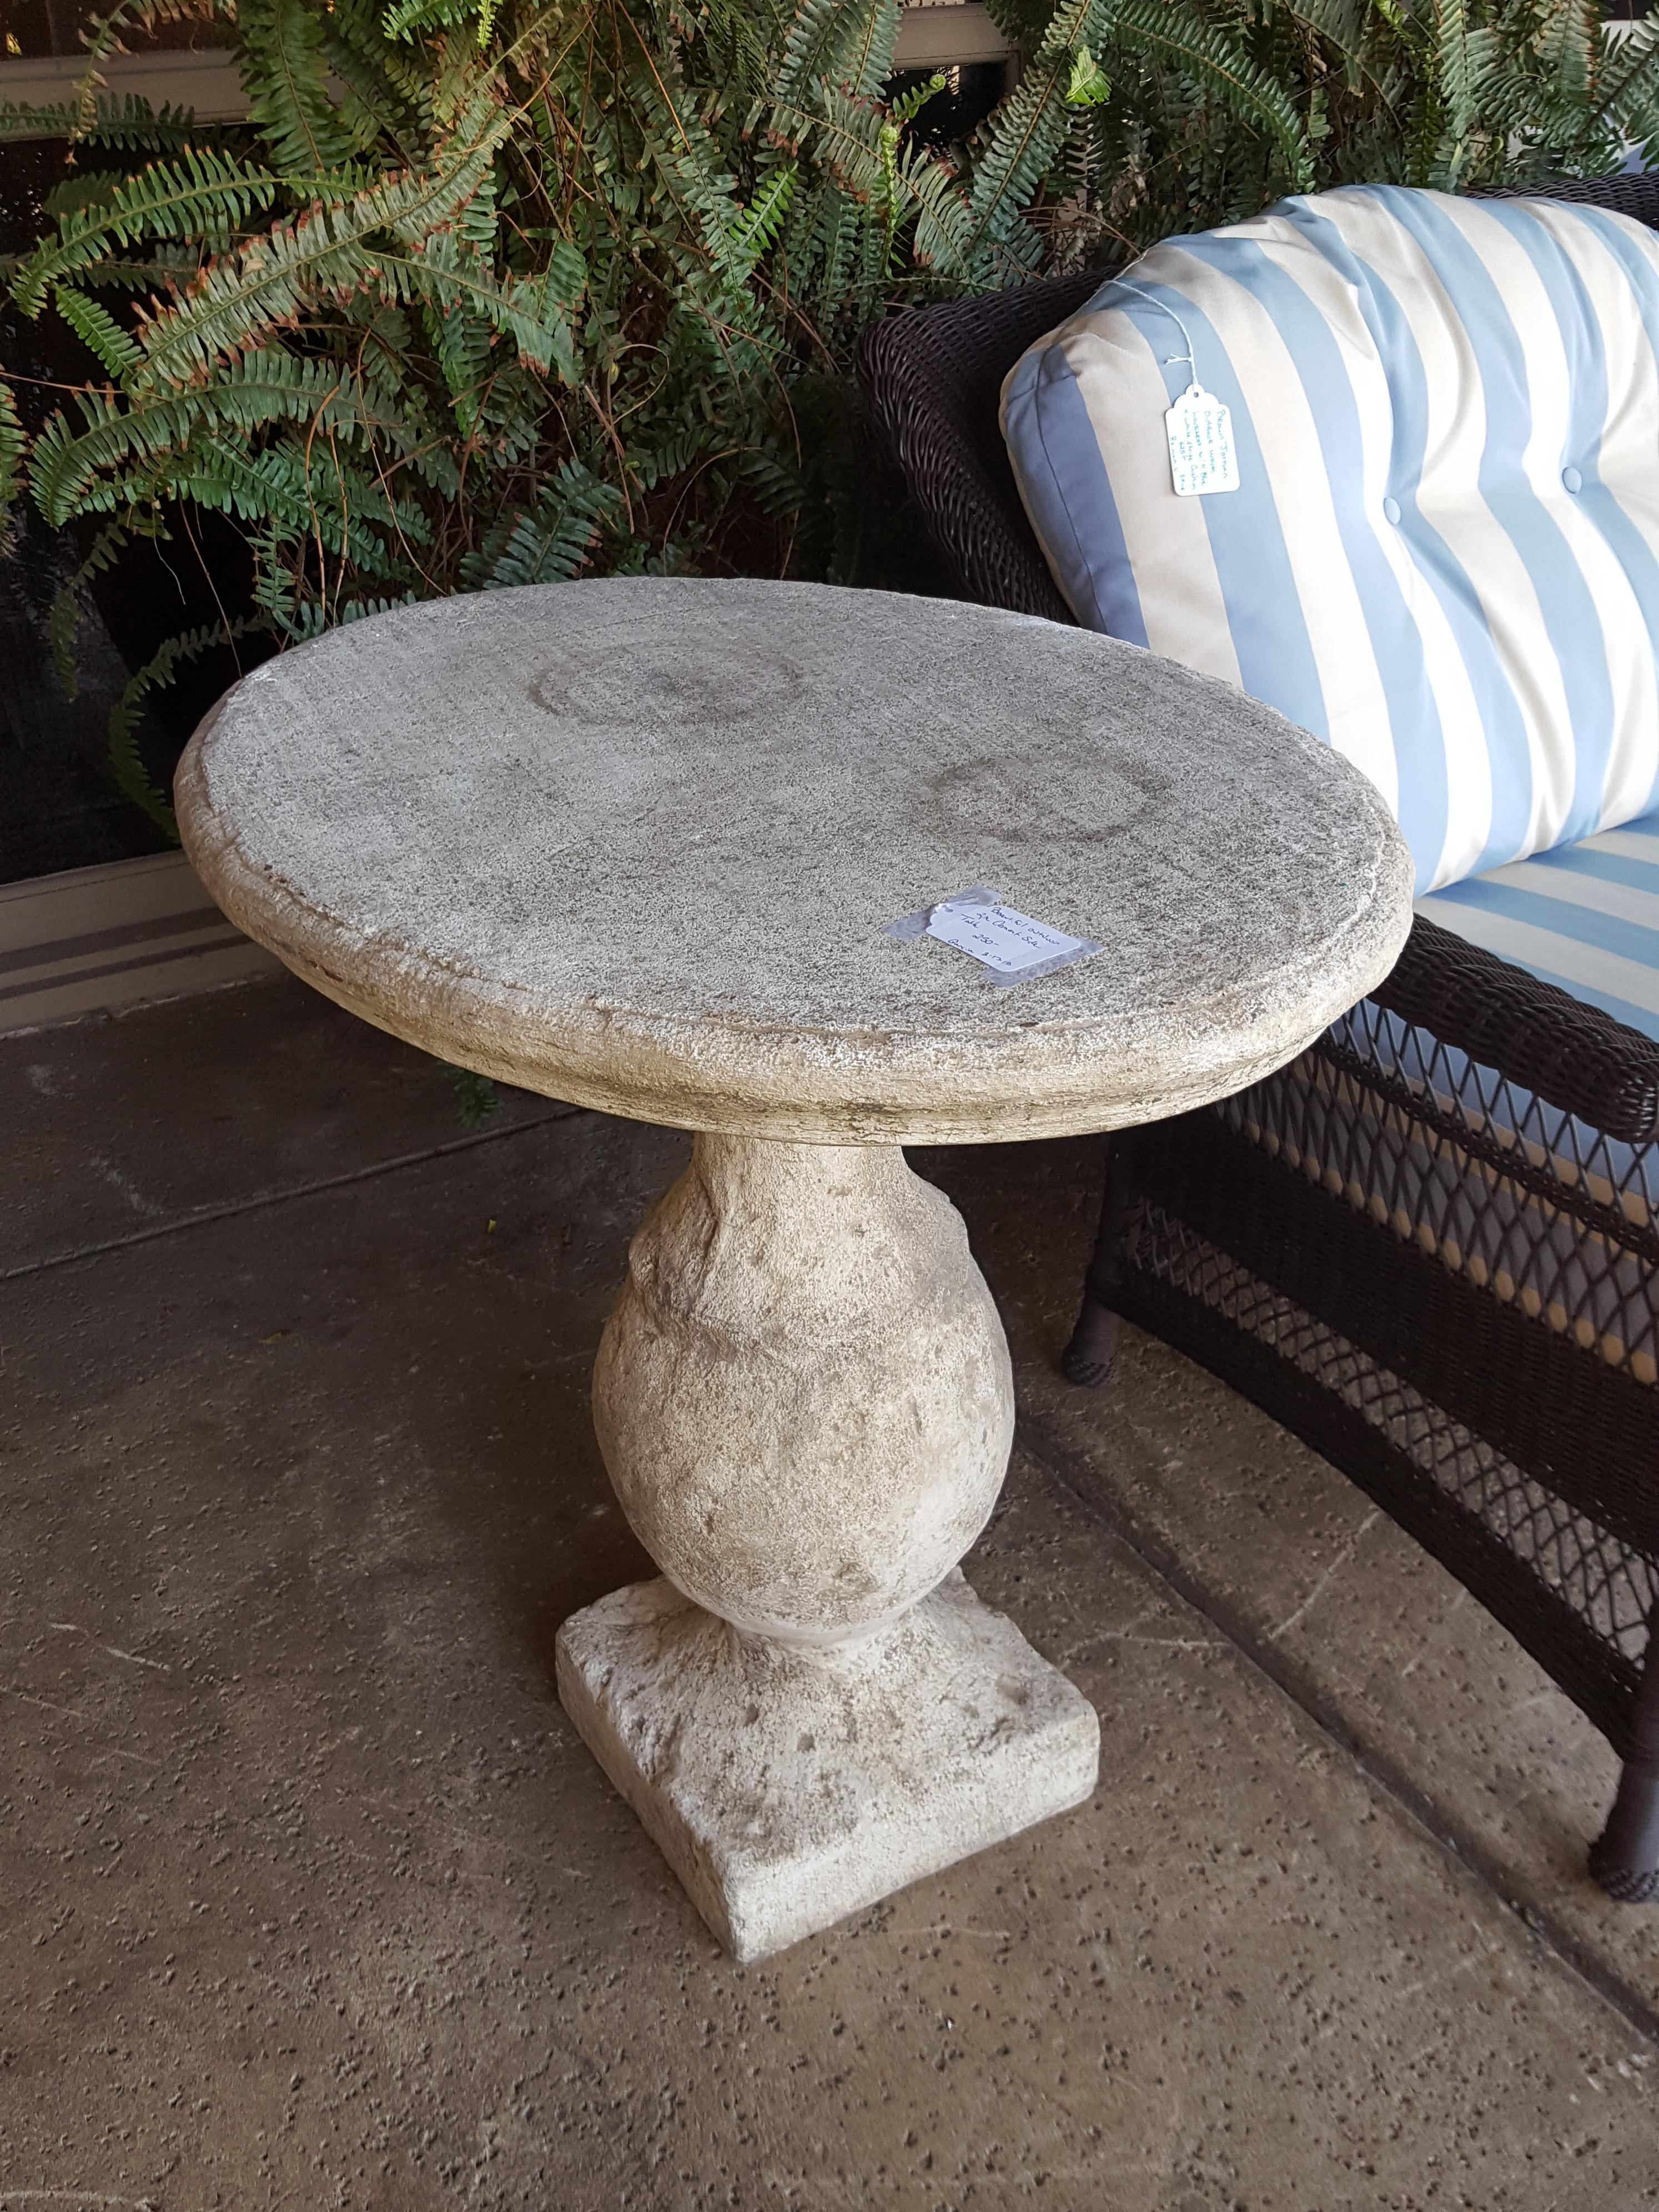 Heavy Pc Oval Outdoor Cement Side Garden Outdoors - Outdoor cement side table